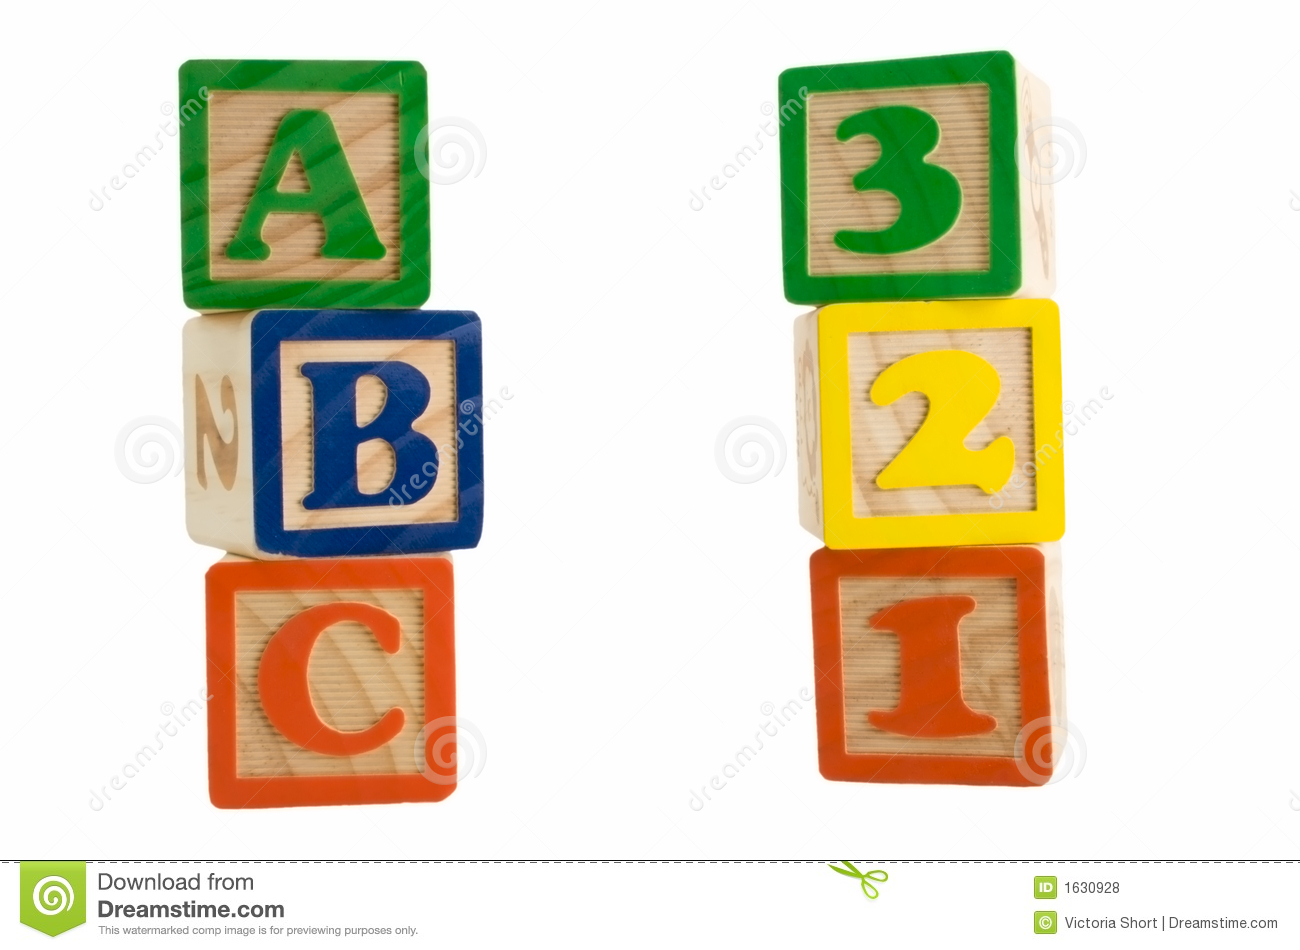 Abc 123 Blocks Royalty Free Stock Photos Image 1630928